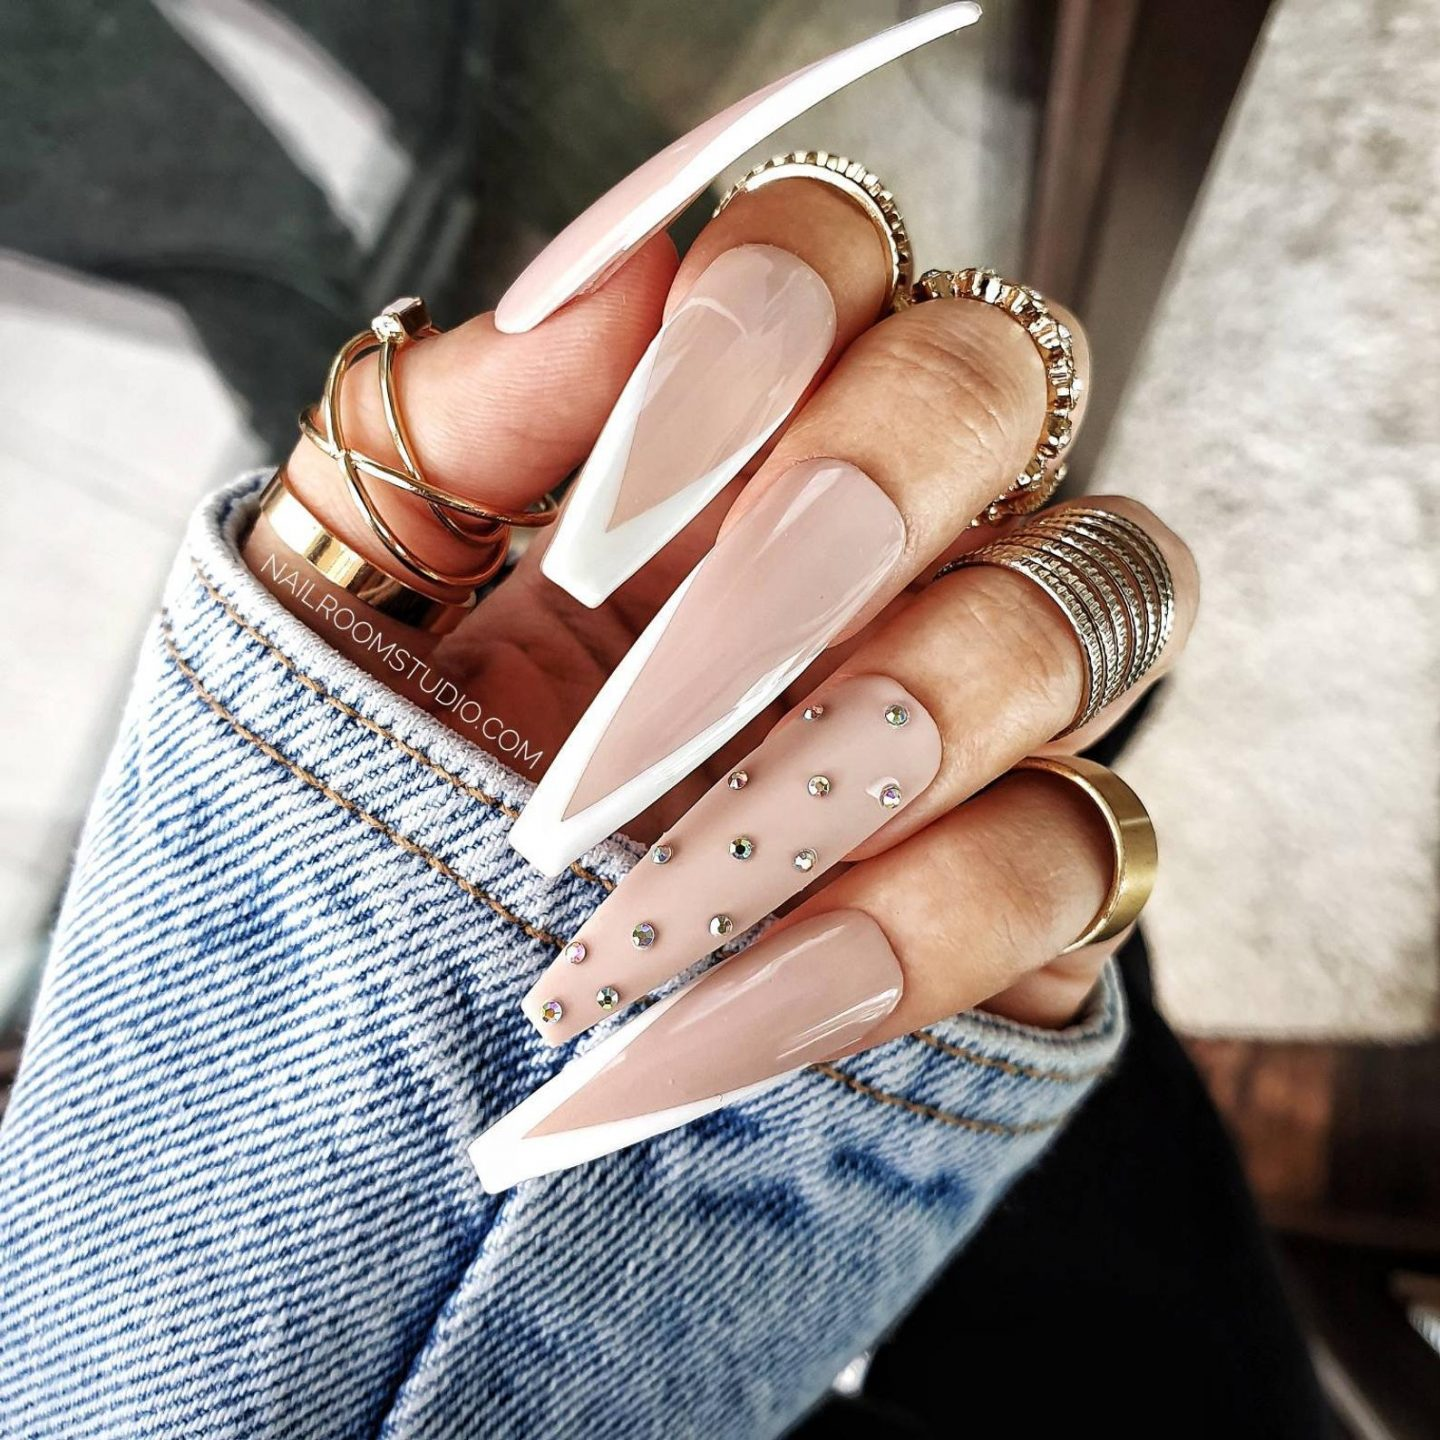 Long French tip coffin nails with rhinestones